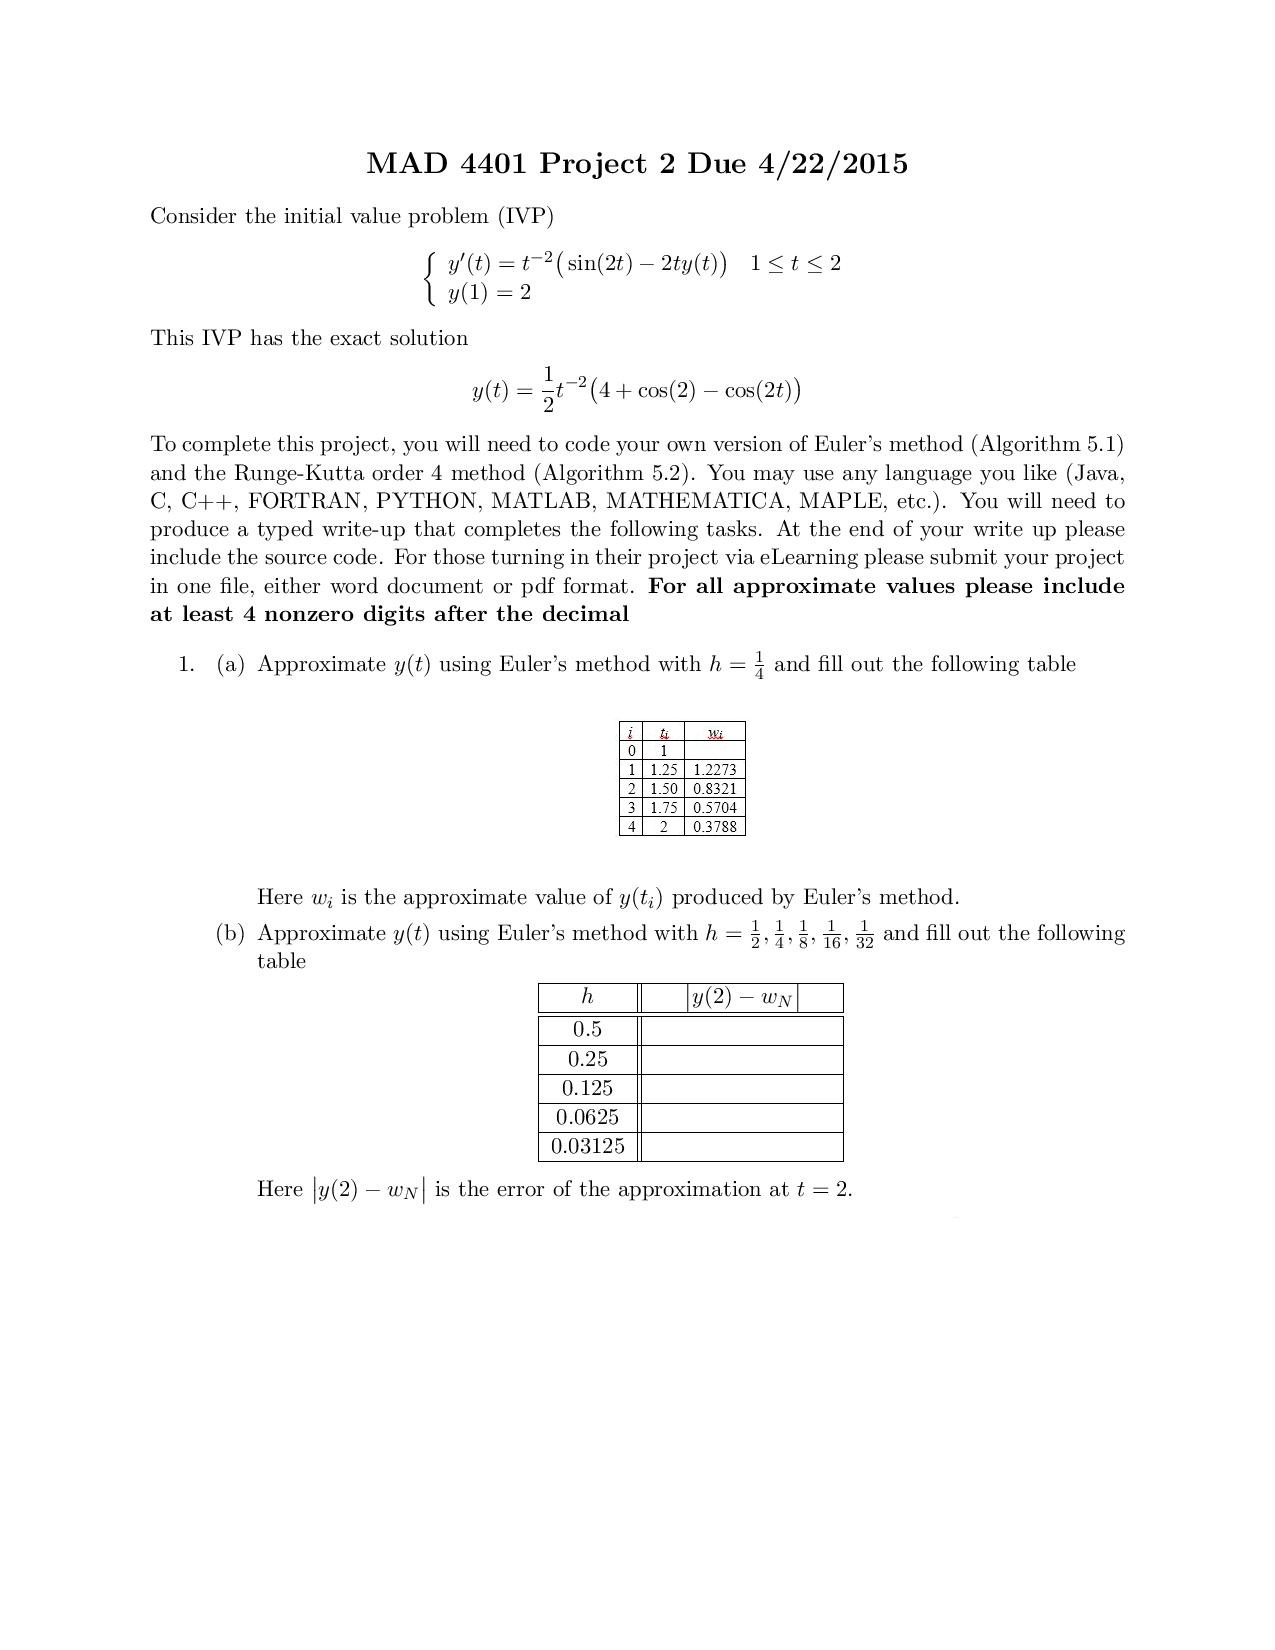 Consider the initial value problem (IVP) This IVP